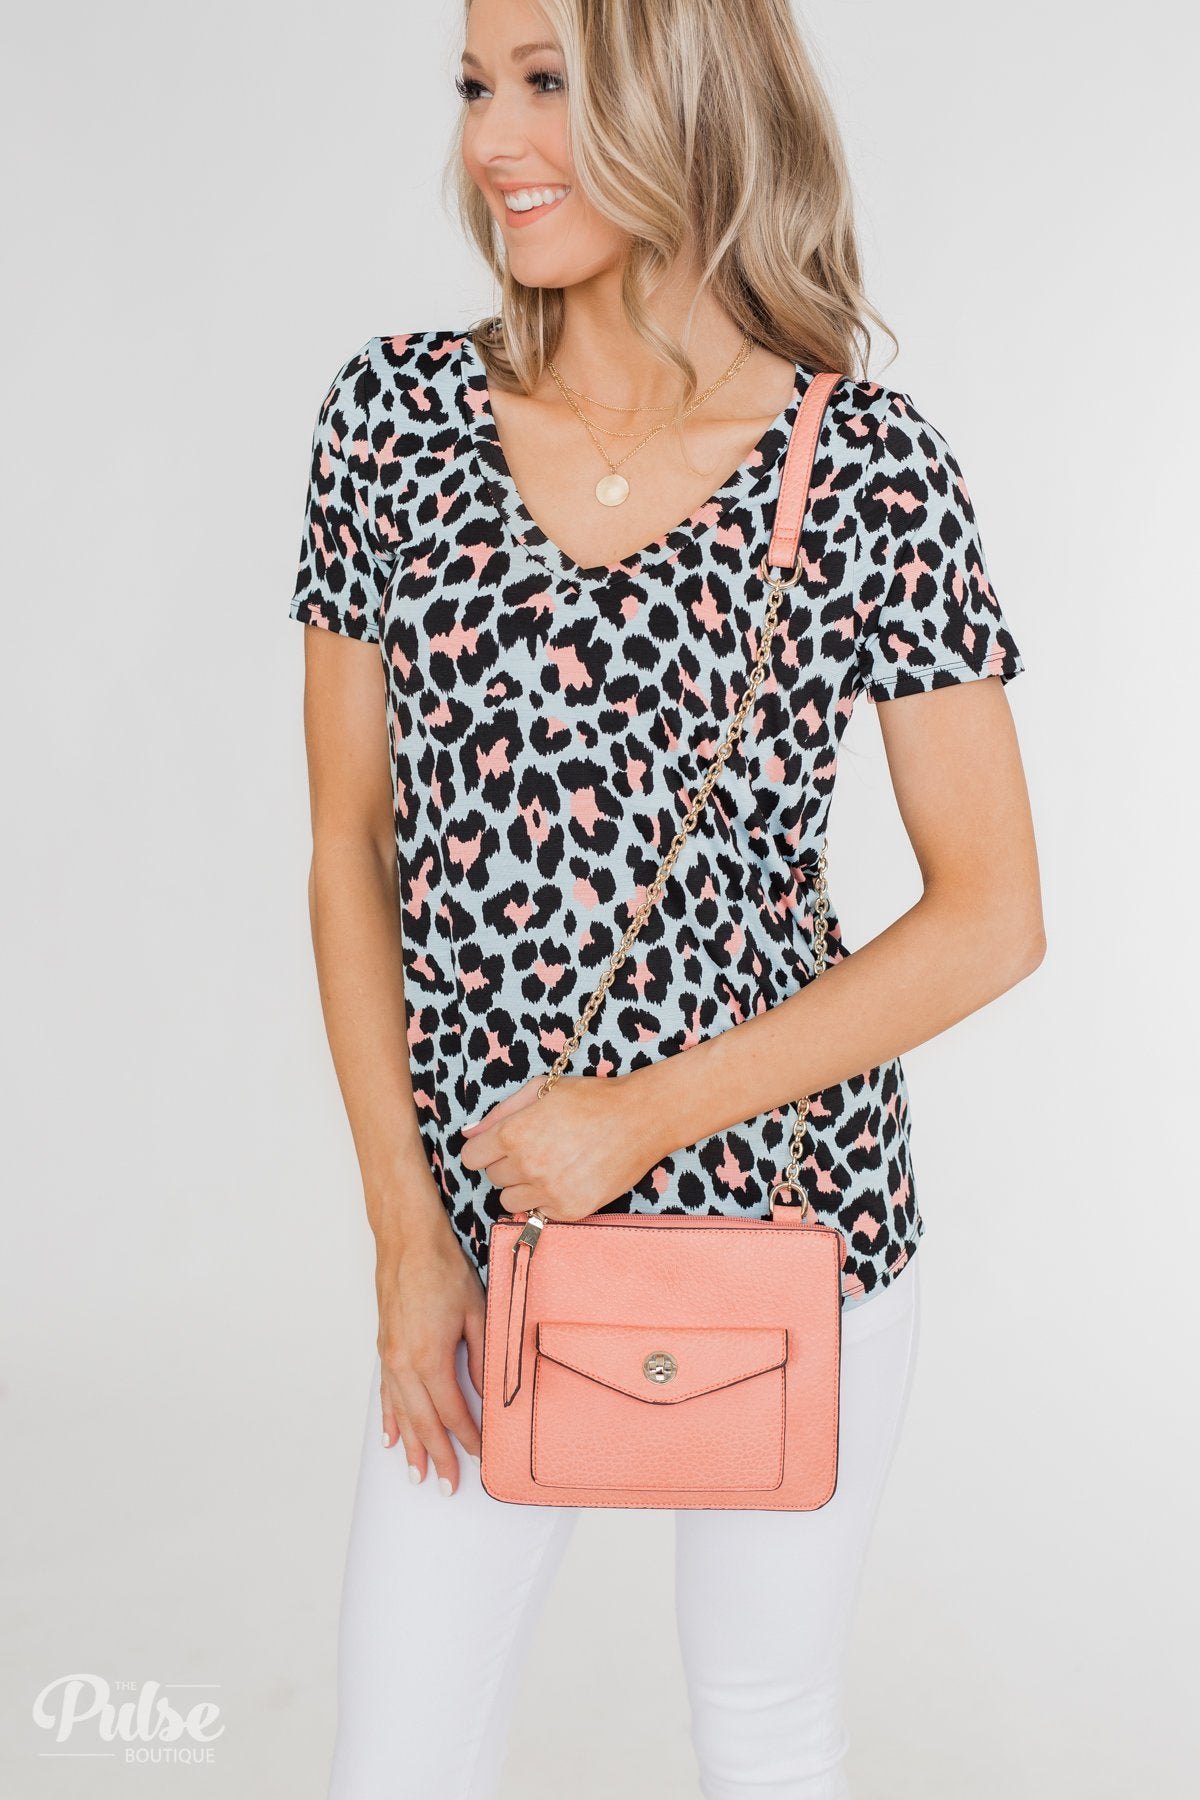 Front Pocket Crossbody Purse- Peach